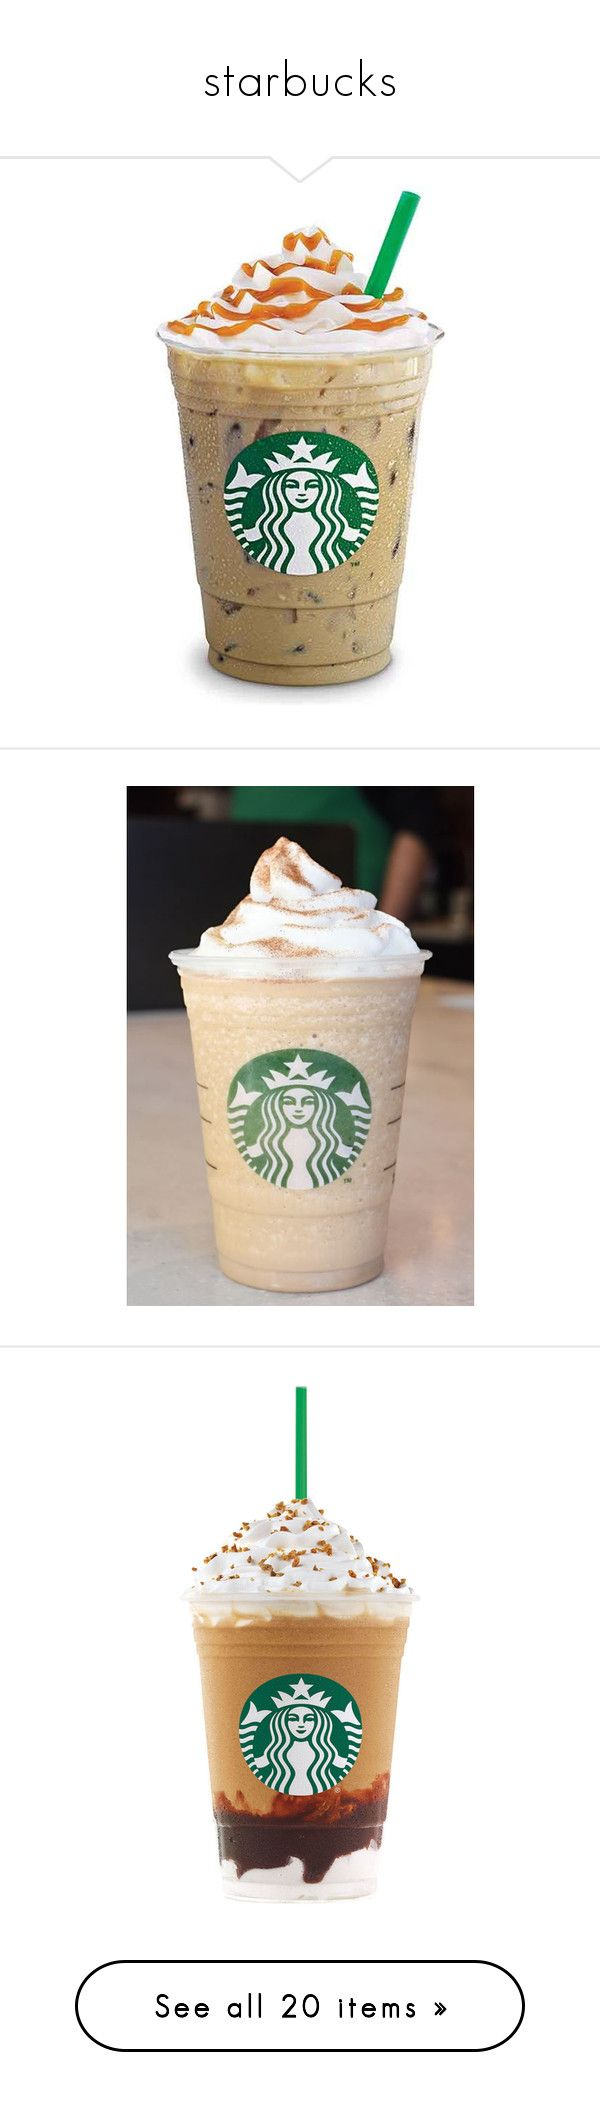 """""""starbucks"""" by dazzlej ❤ liked on Polyvore featuring fillers, starbucks, backgrounds, words, random, text, phrase, quotes, saying and food"""